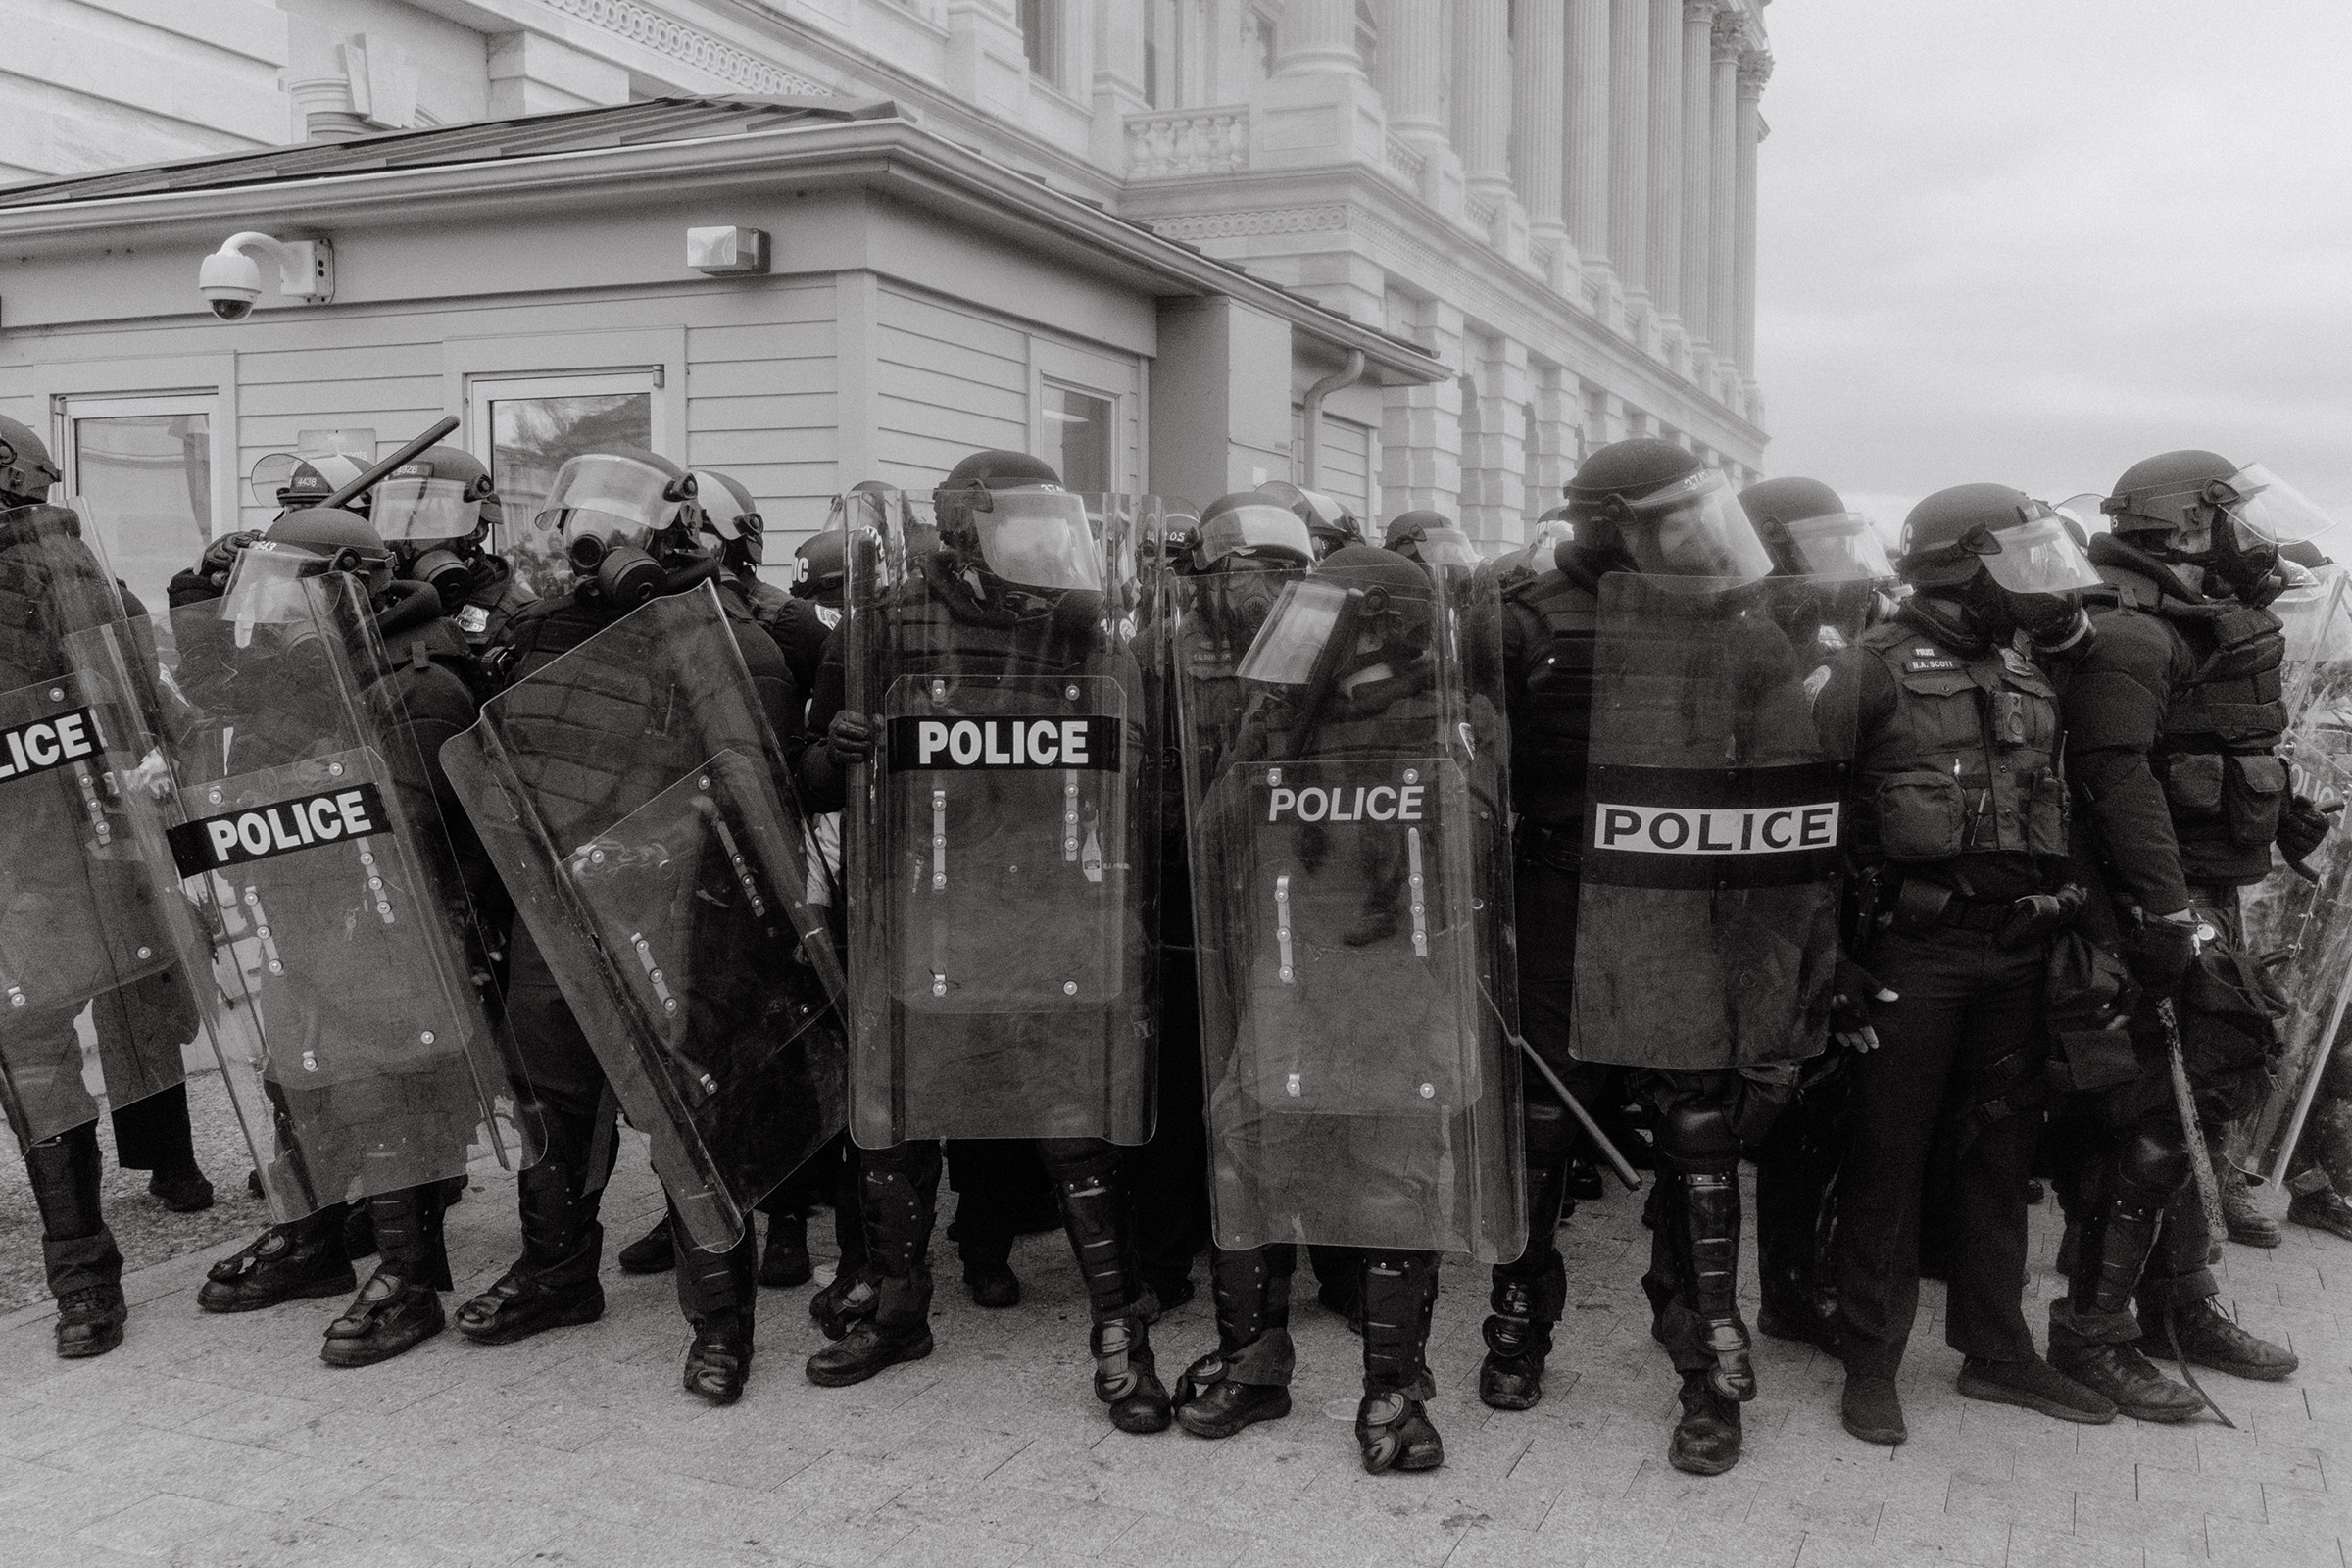 U.S. Capitol Police outside of the Capitol Building in Washington on Jan. 6, 2021.